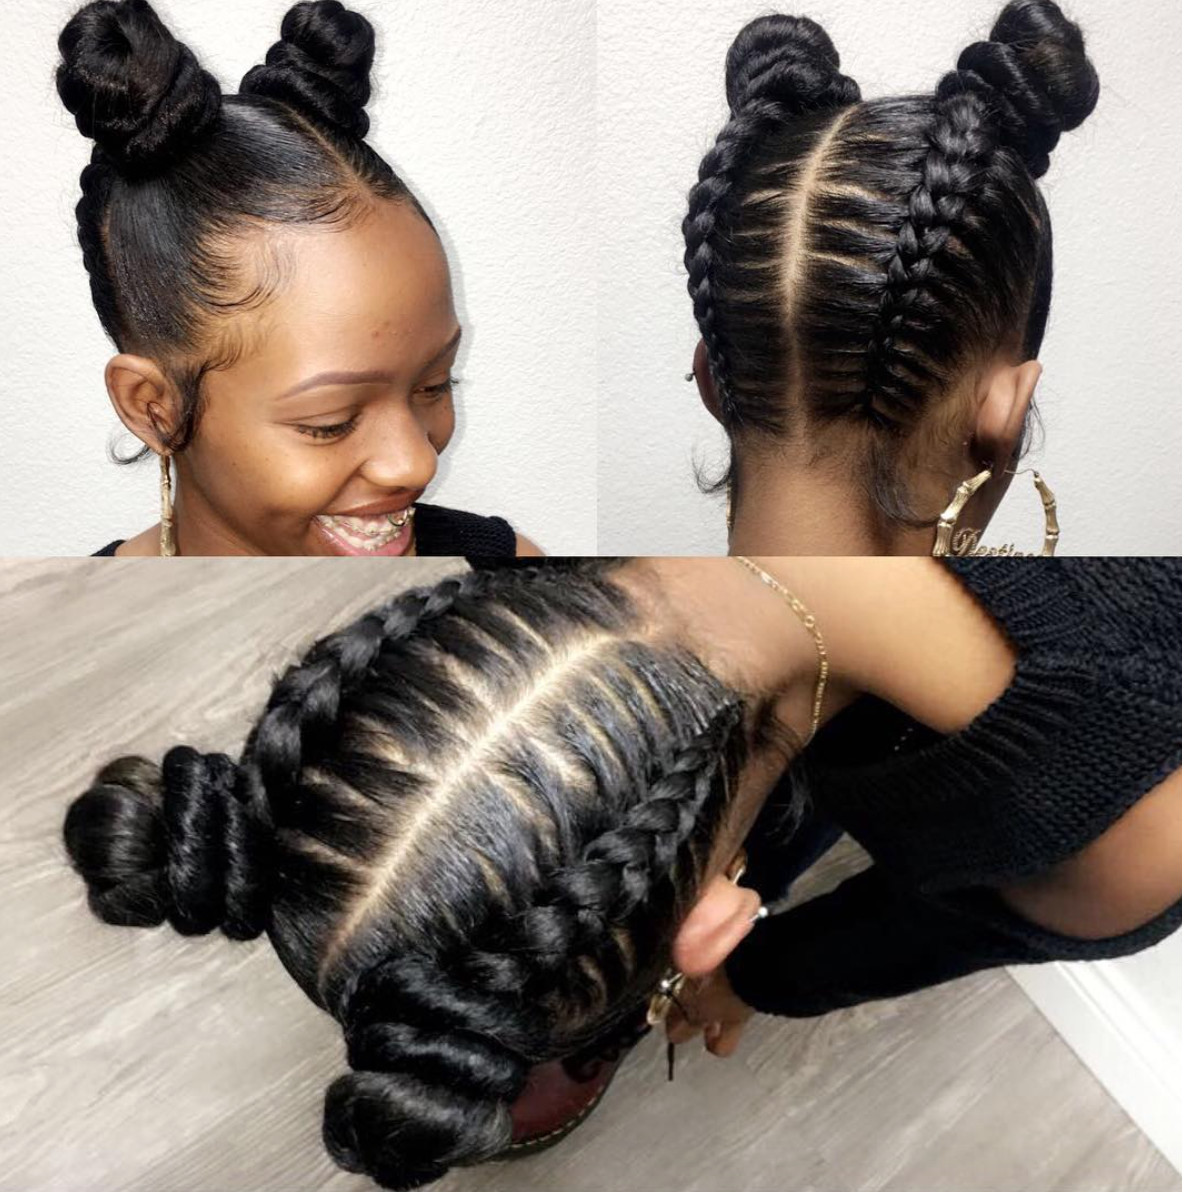 pin by black hair information - coils media ltd on braids